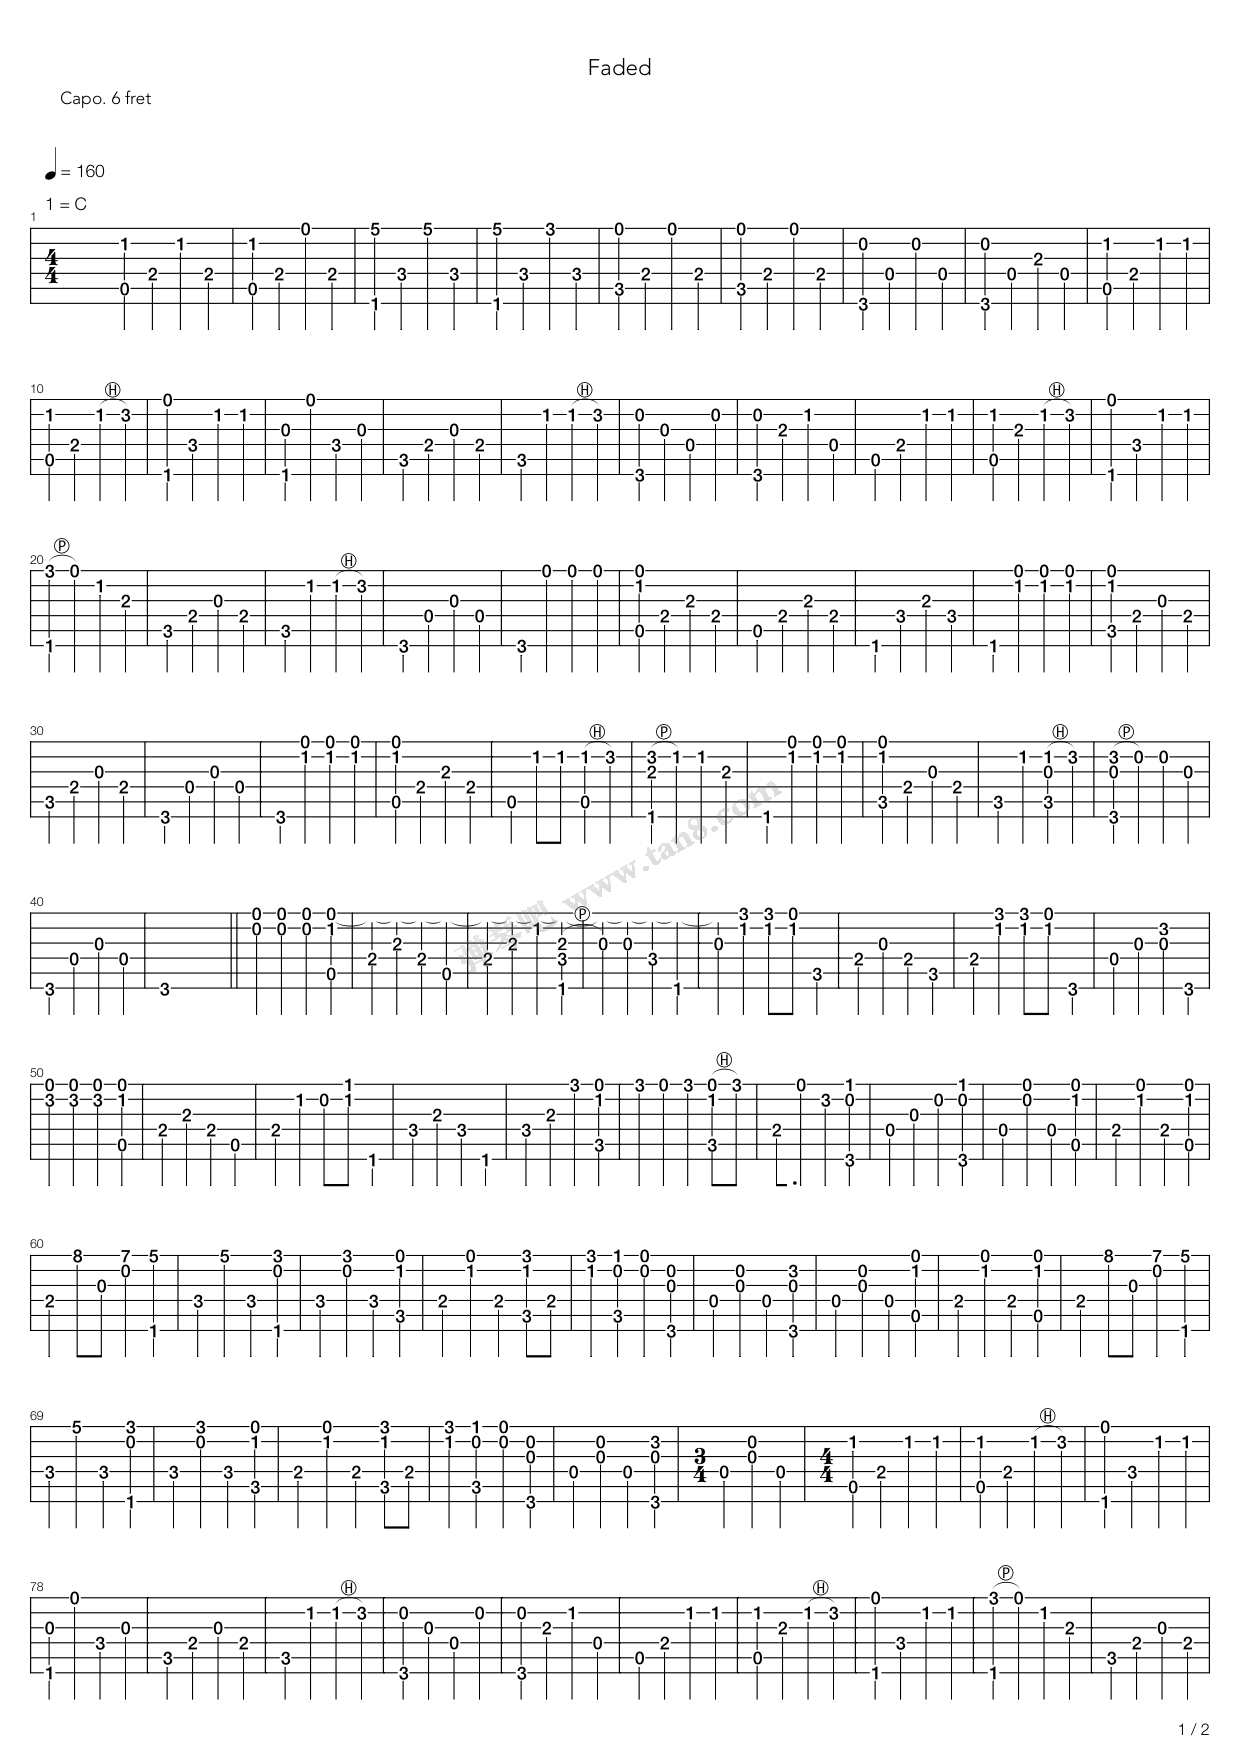 Faded By Alan Walker Solo Free Guitar Sheet Music Tabs Chords